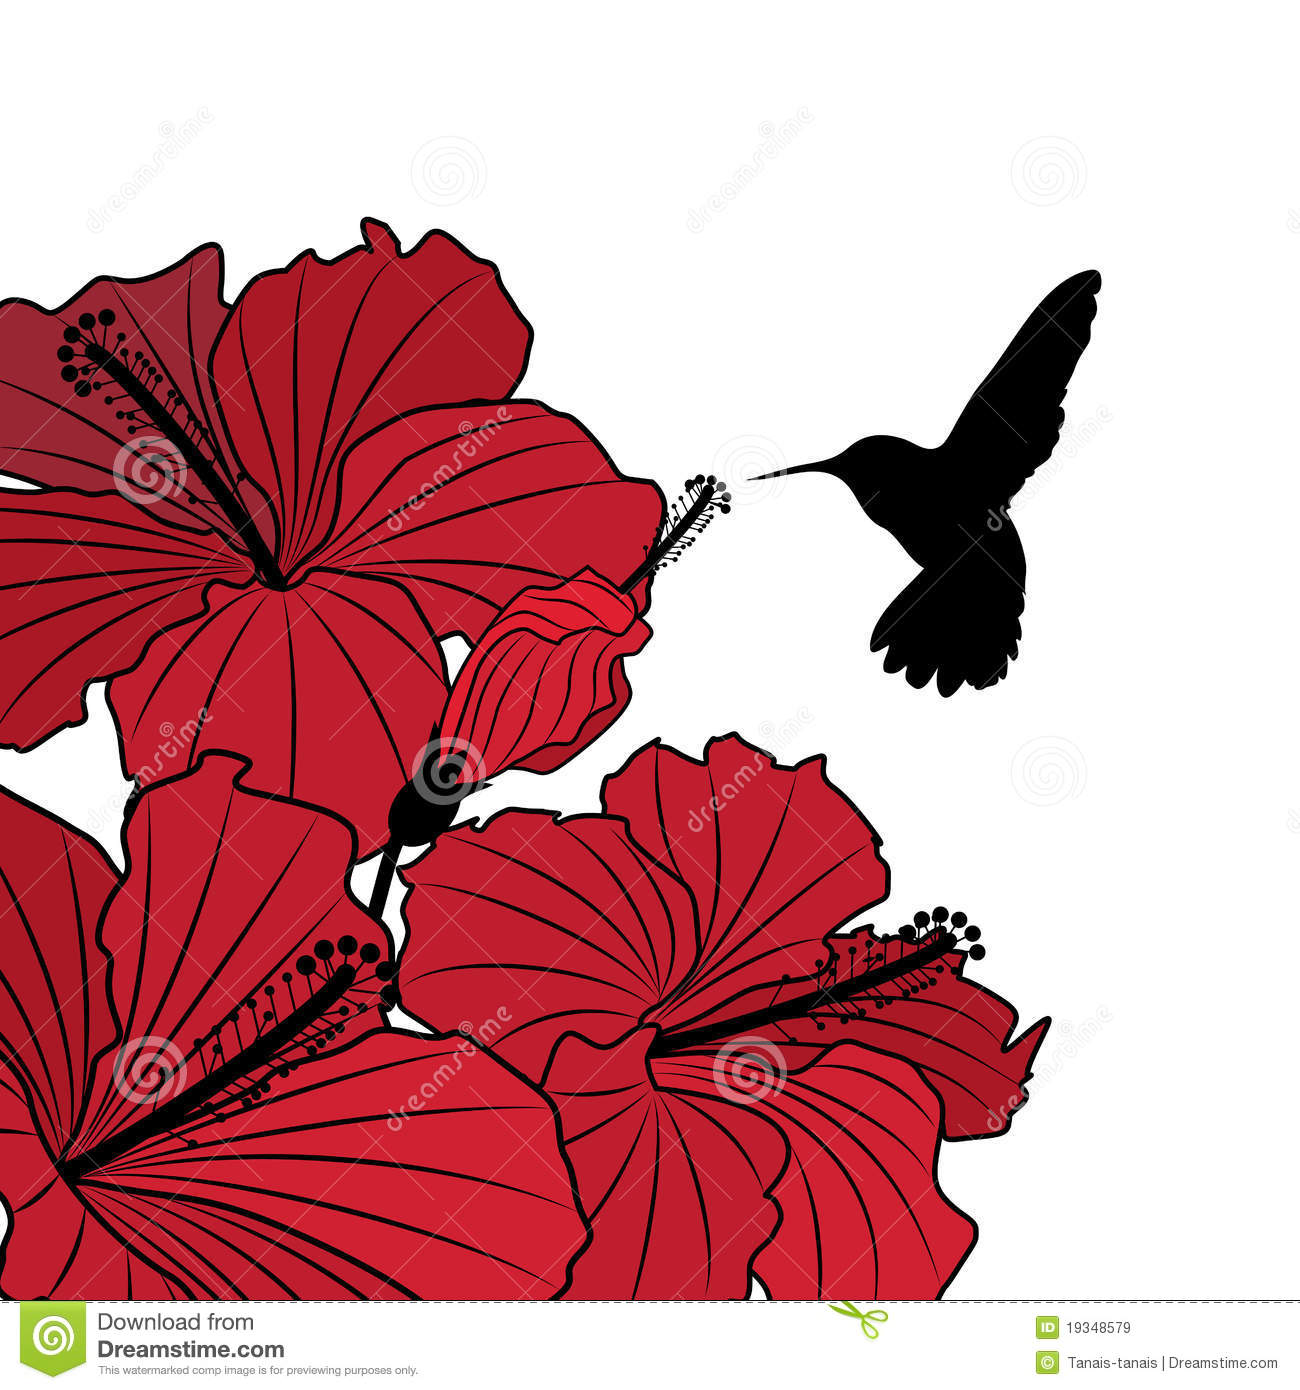 Floral background with hibiscus and hummingbird stock vector floral background with hibiscus and hummingbird izmirmasajfo Image collections